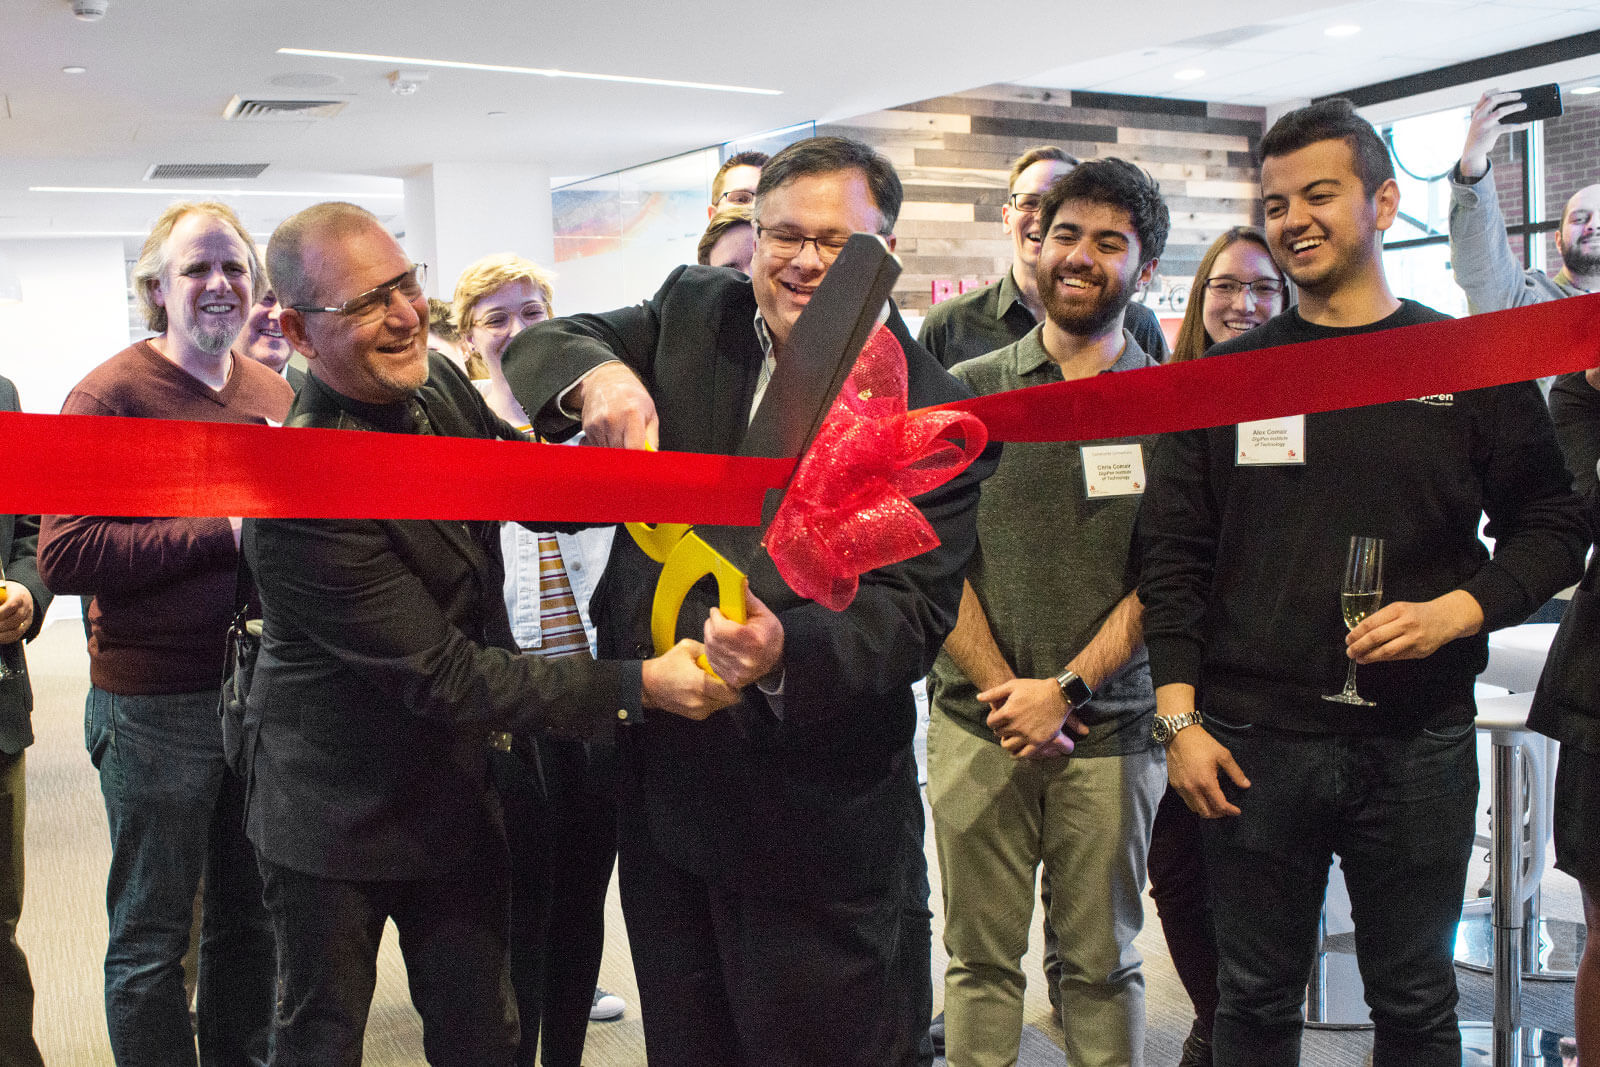 Two men cut through a large red ribbon with oversized scissors while a group of smiling people stand behind them.